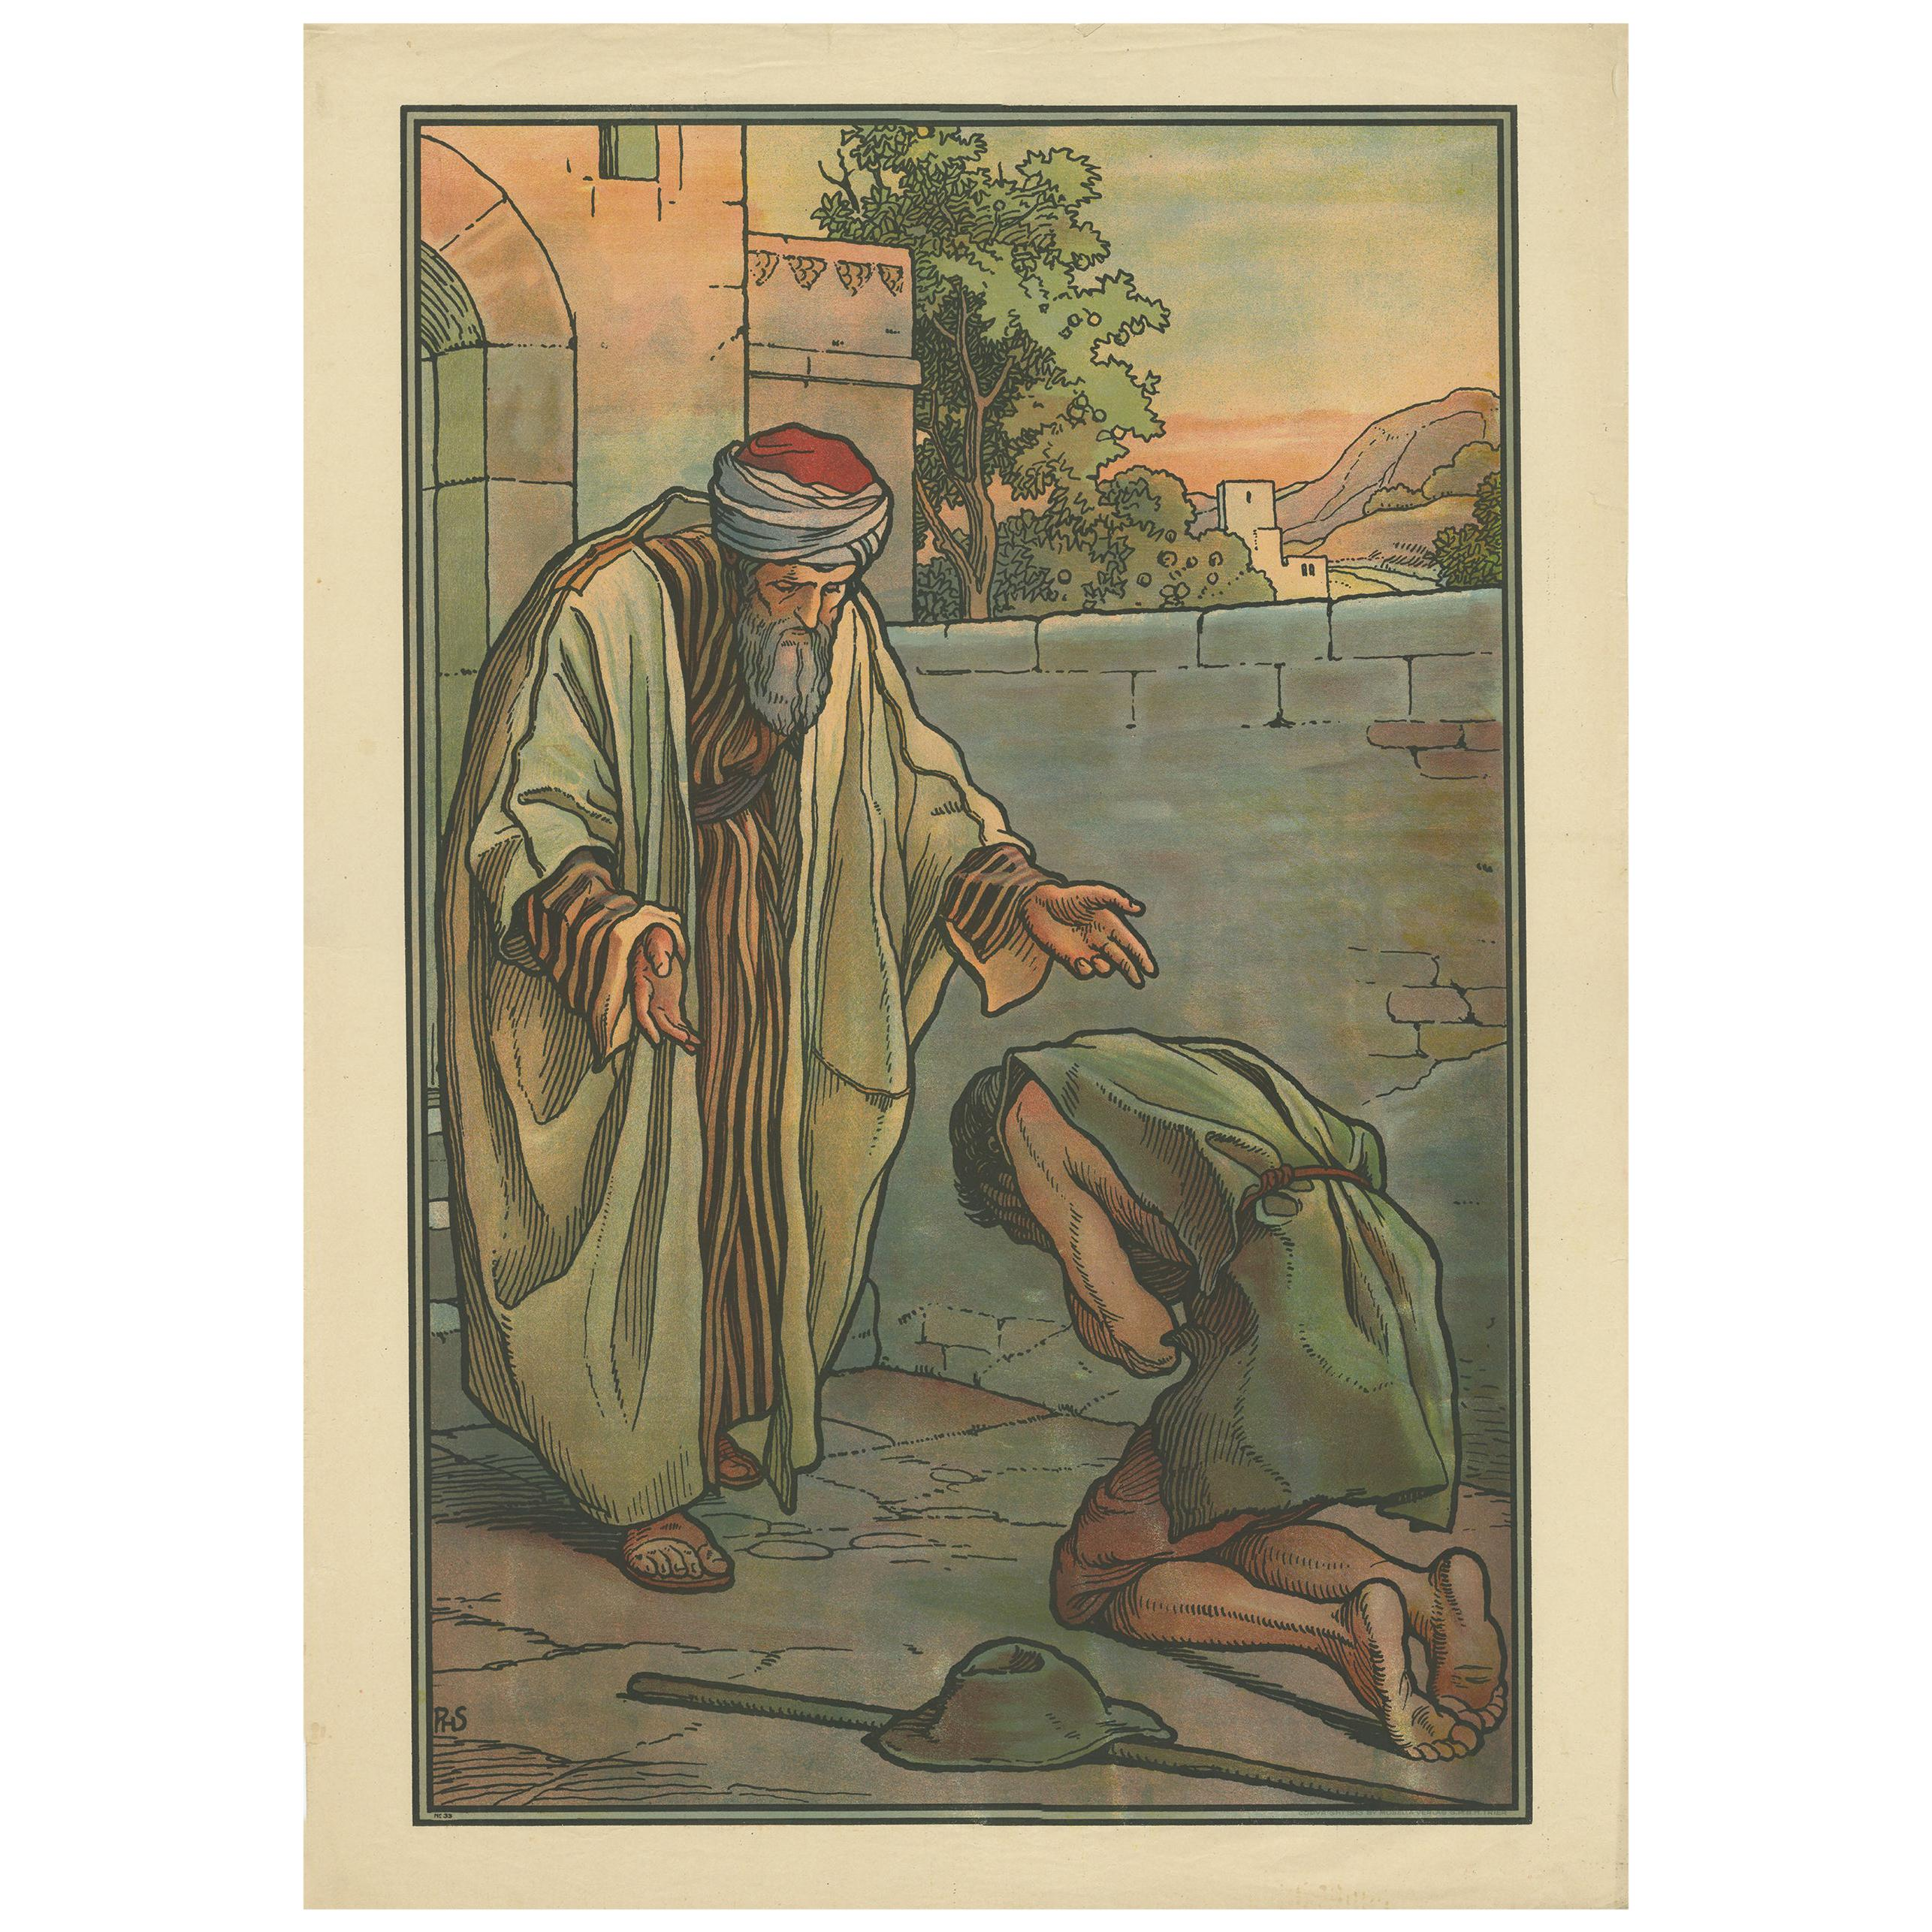 Antique Religion Print of the Parable of the Prodigal Son, 1913